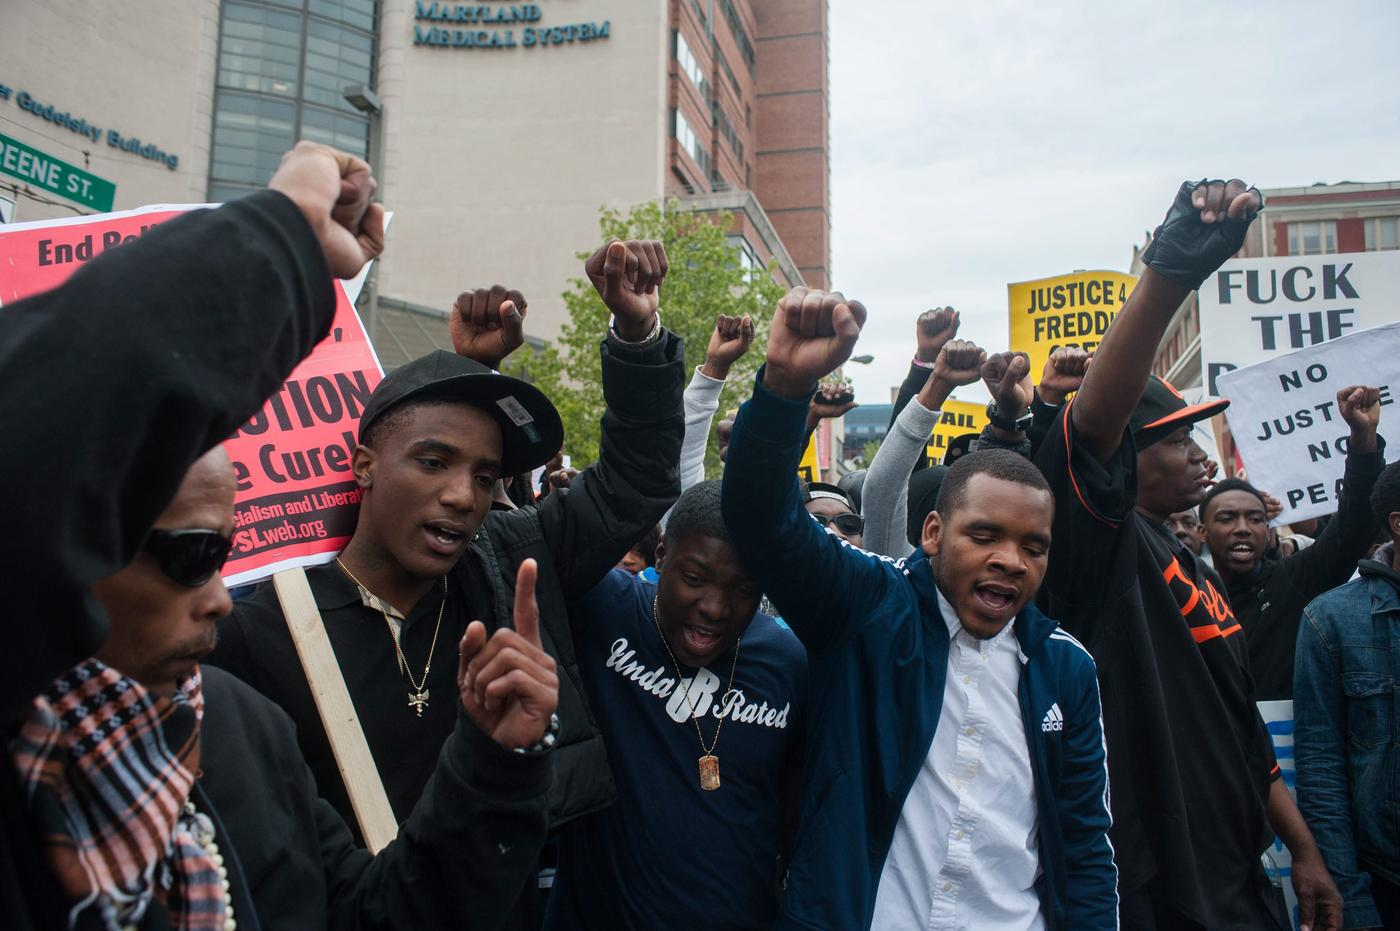 Demonstrators protest the death of Freddie Gray (Picture: EPA